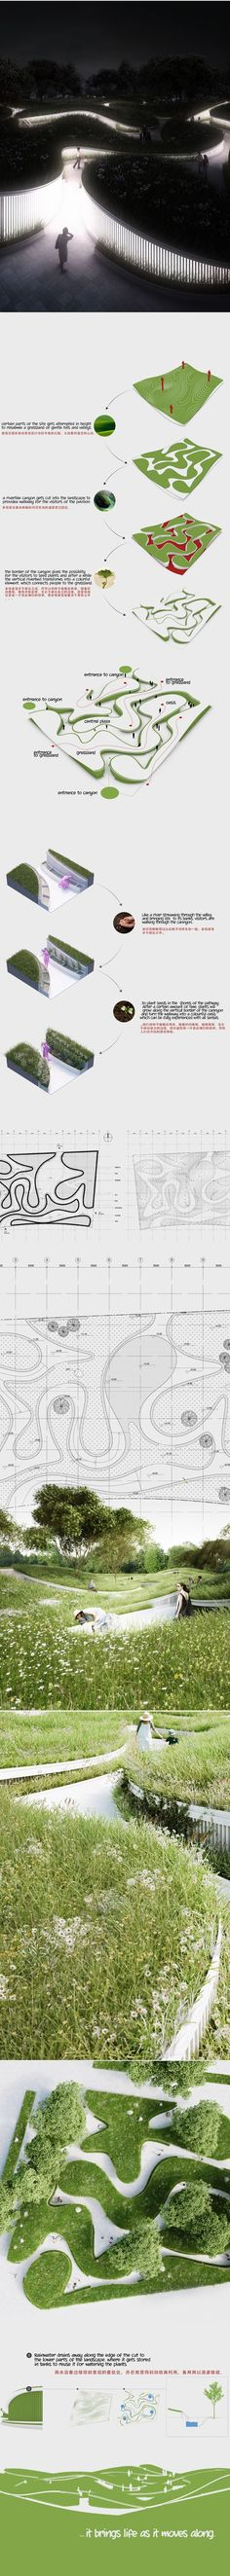 Presentation Where The River Runs / Garden Expo 2015 on Behance Landscape Architecture Design, Green Architecture, Concept Architecture, Architecture Drawings, Architecture Events, Architecture Diagrams, Architecture Portfolio, Espace Design, Planer Layout